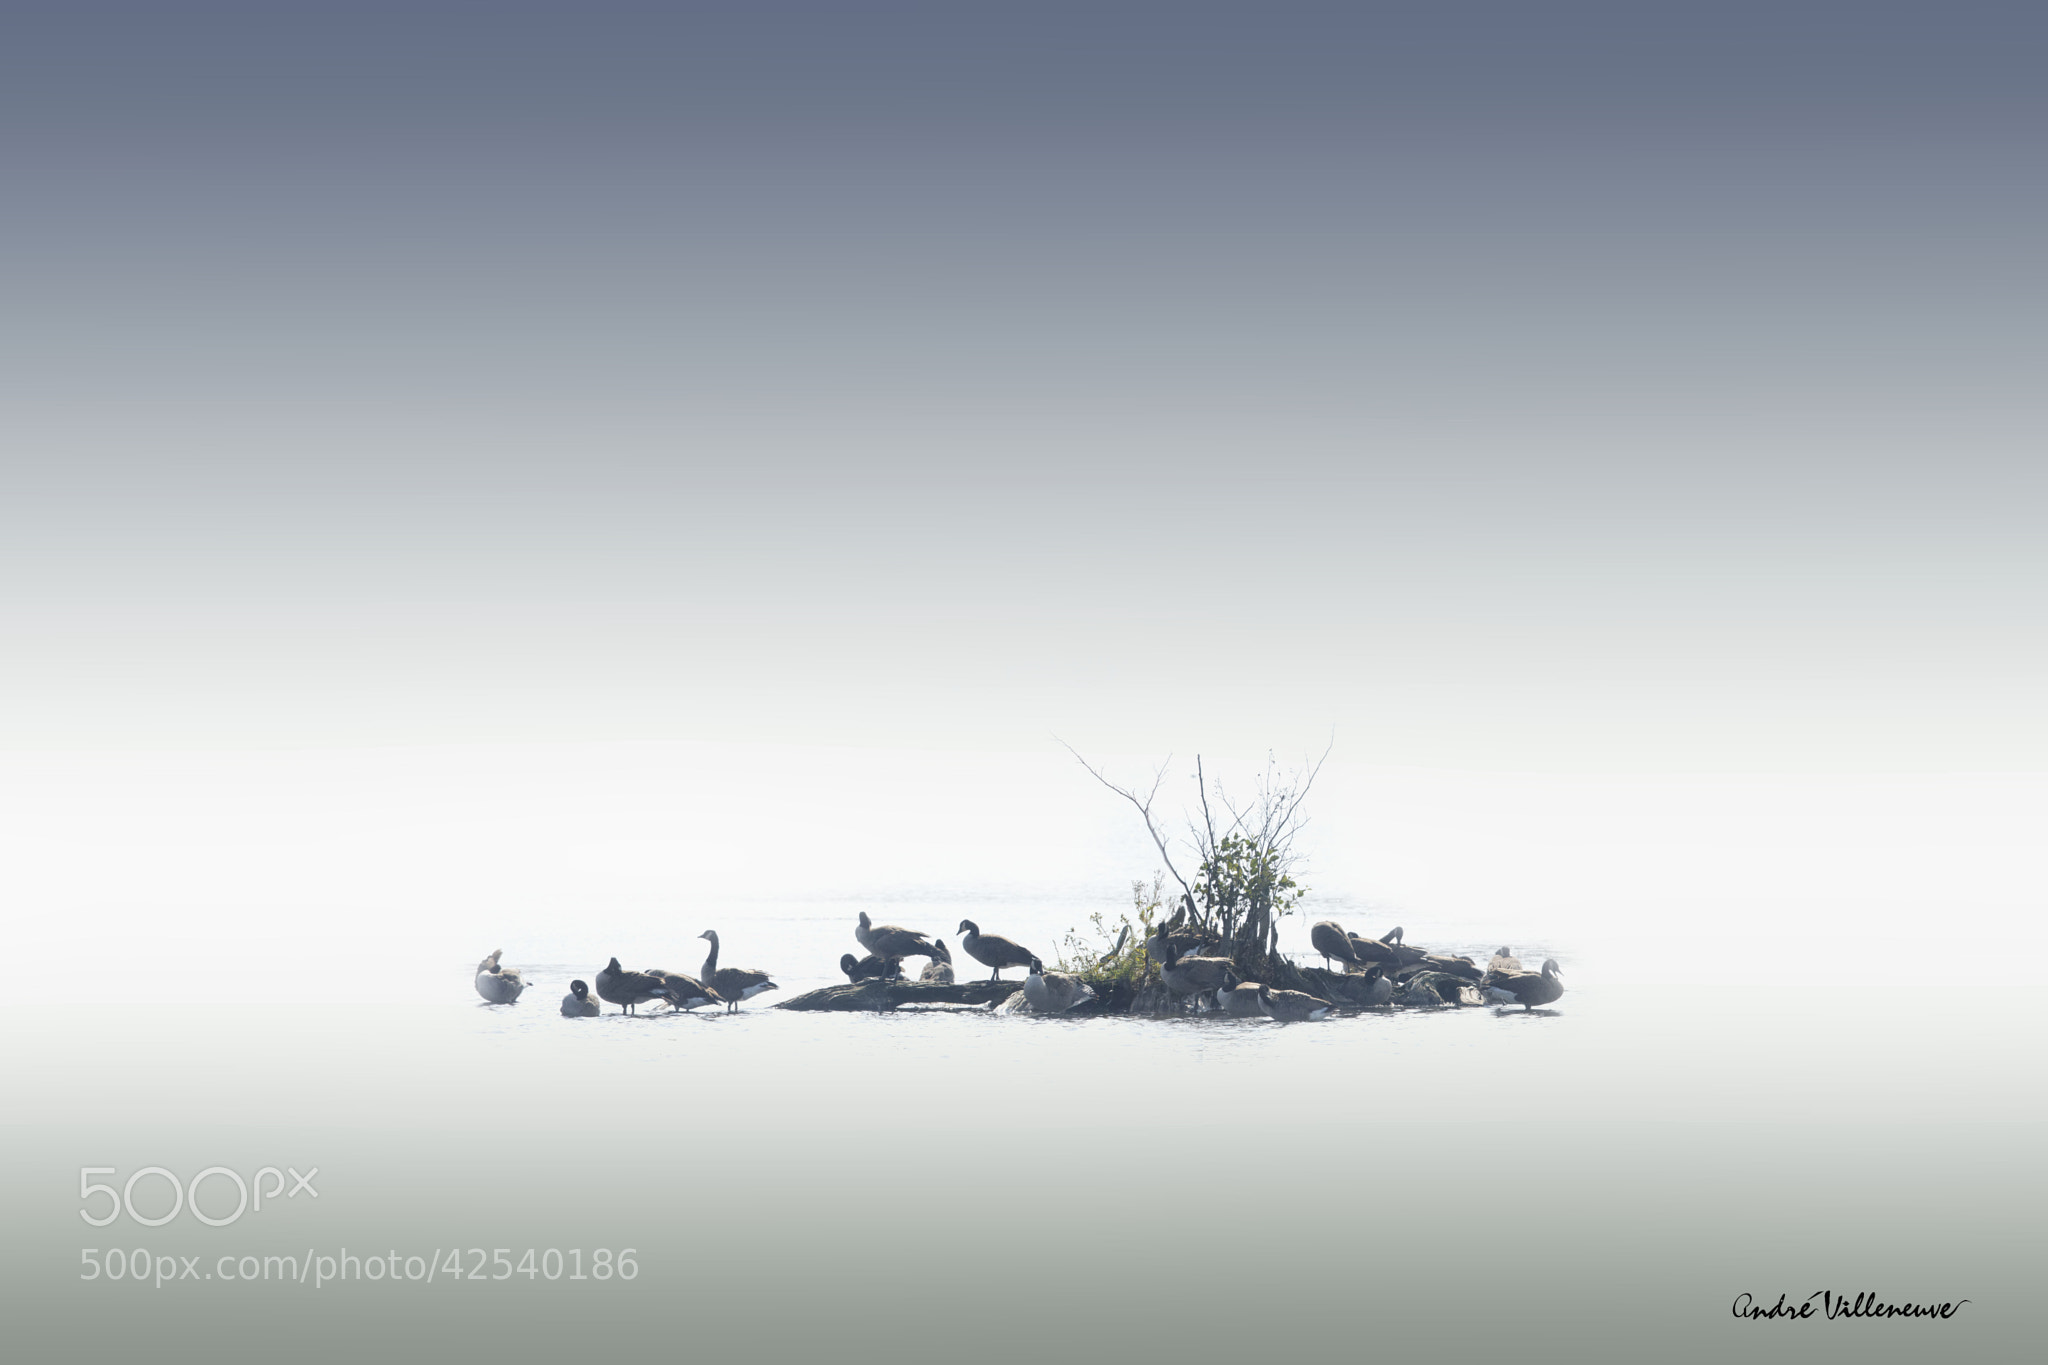 Photograph Duck island by Andre Villeneuve on 500px